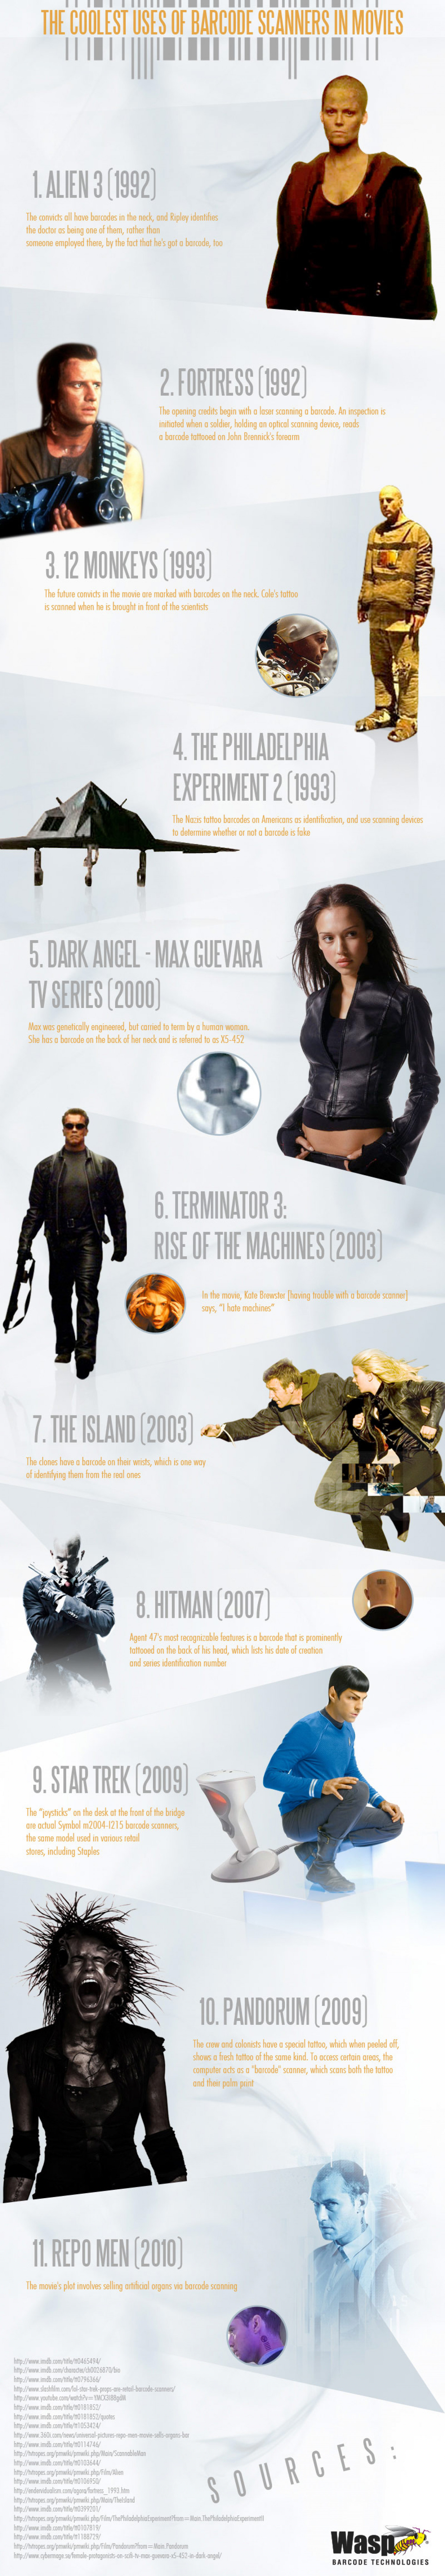 The Coolest Uses of Barcode Scanners in Movies Infographic